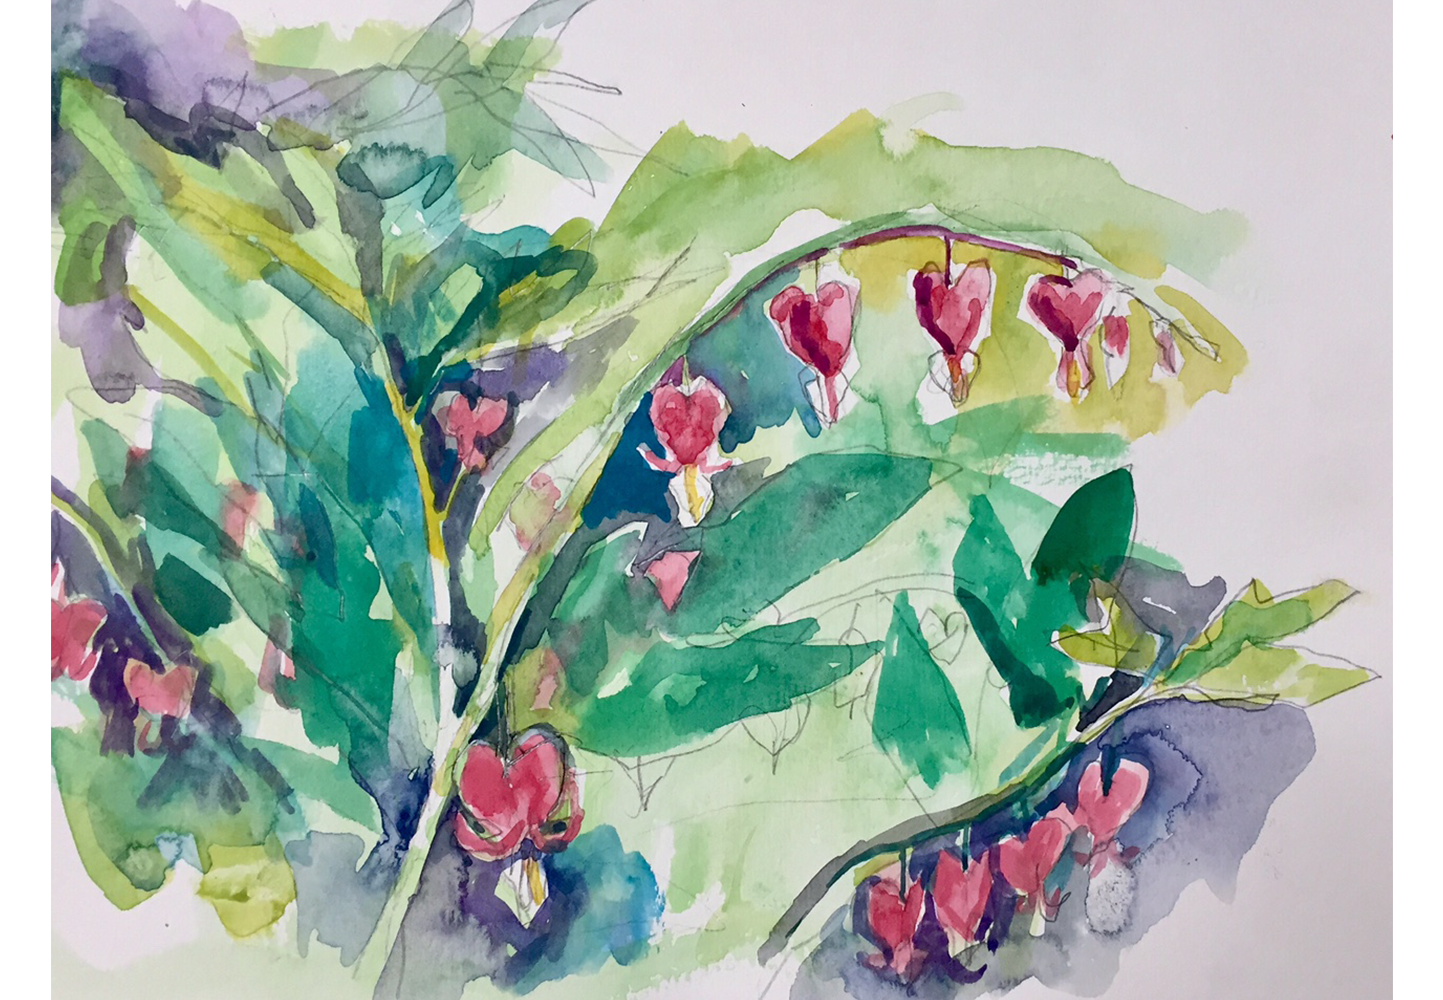 Bleeding Heart, watercolor